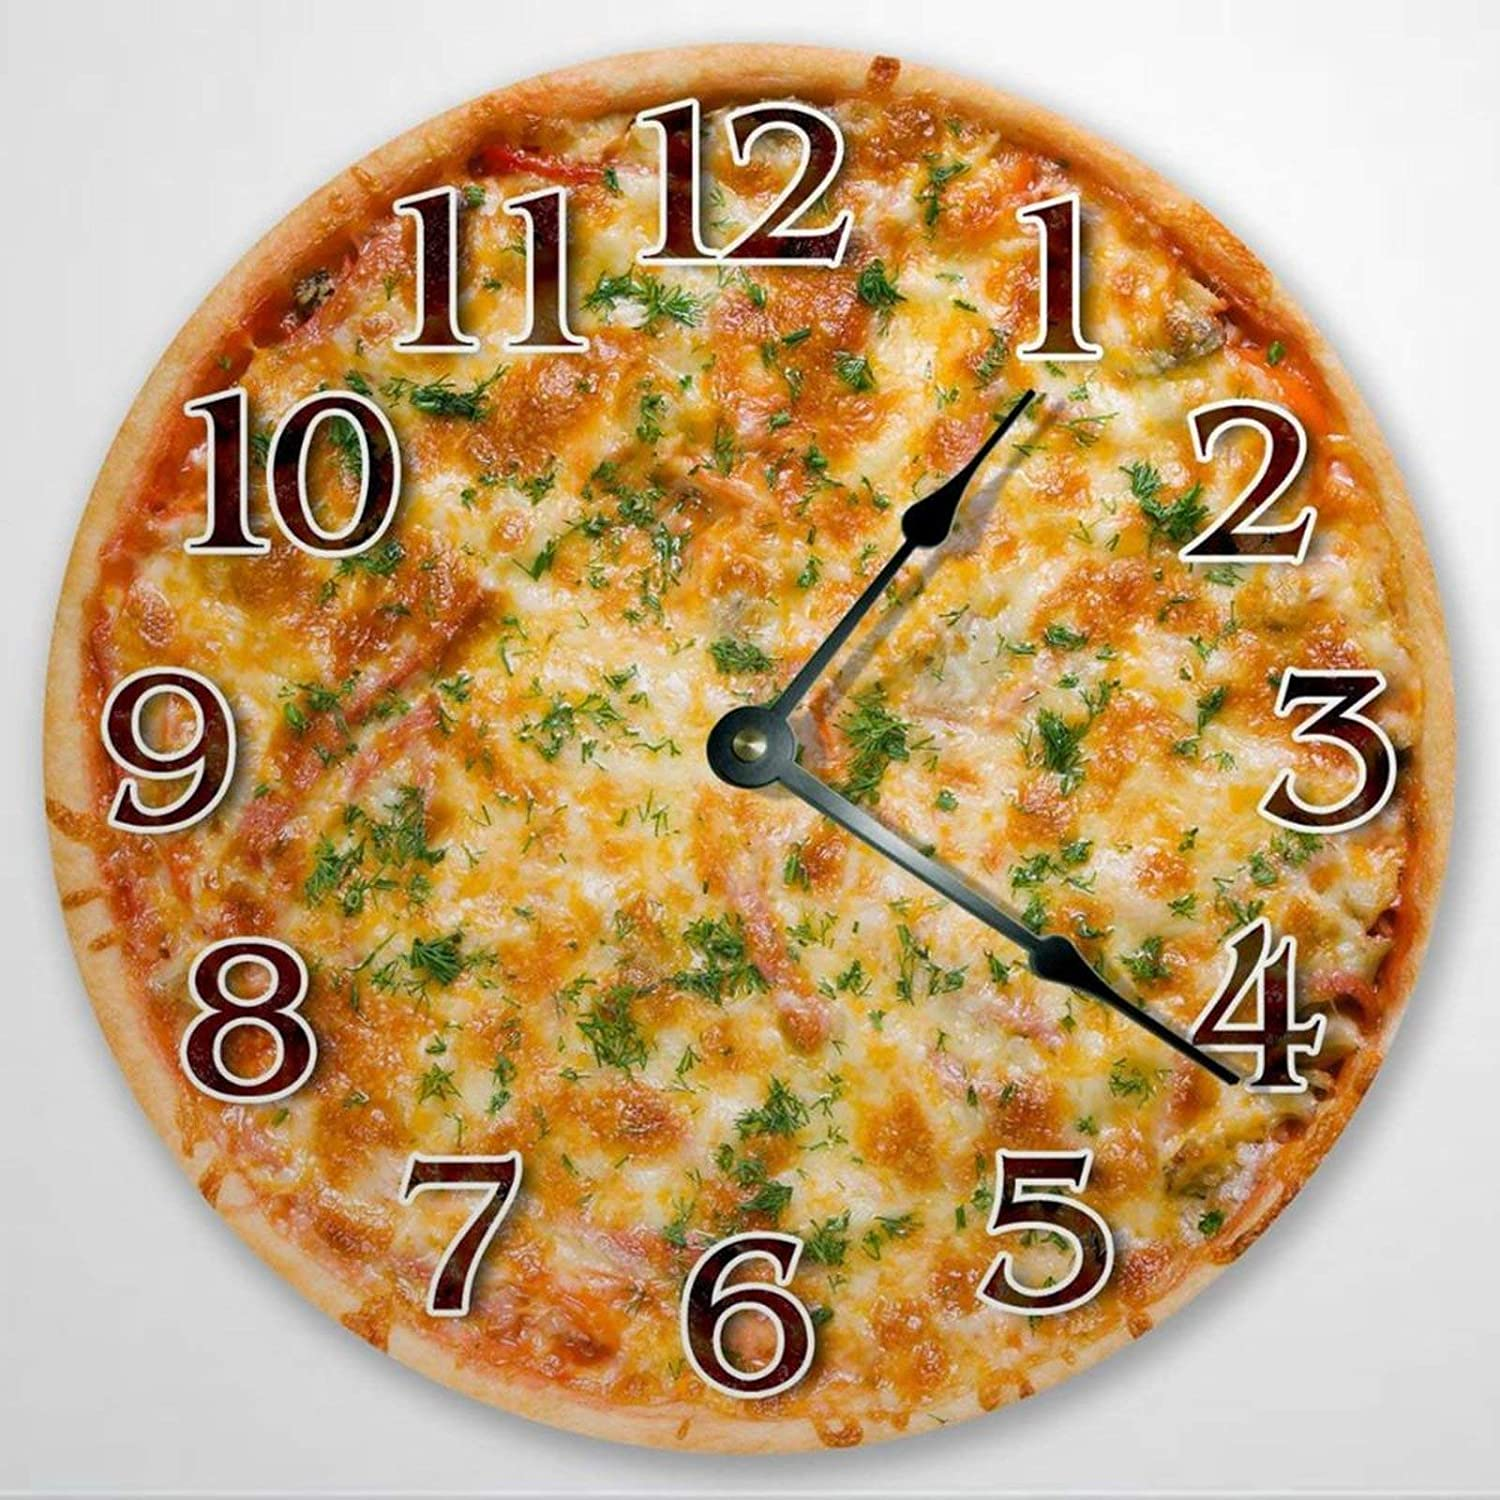 Cheese Pizza Wooden Wall Clock Silent Non Ticking Kitchen Clock 12 Inch Battery Operated Round Easy to Read Food Clock for Home Office School